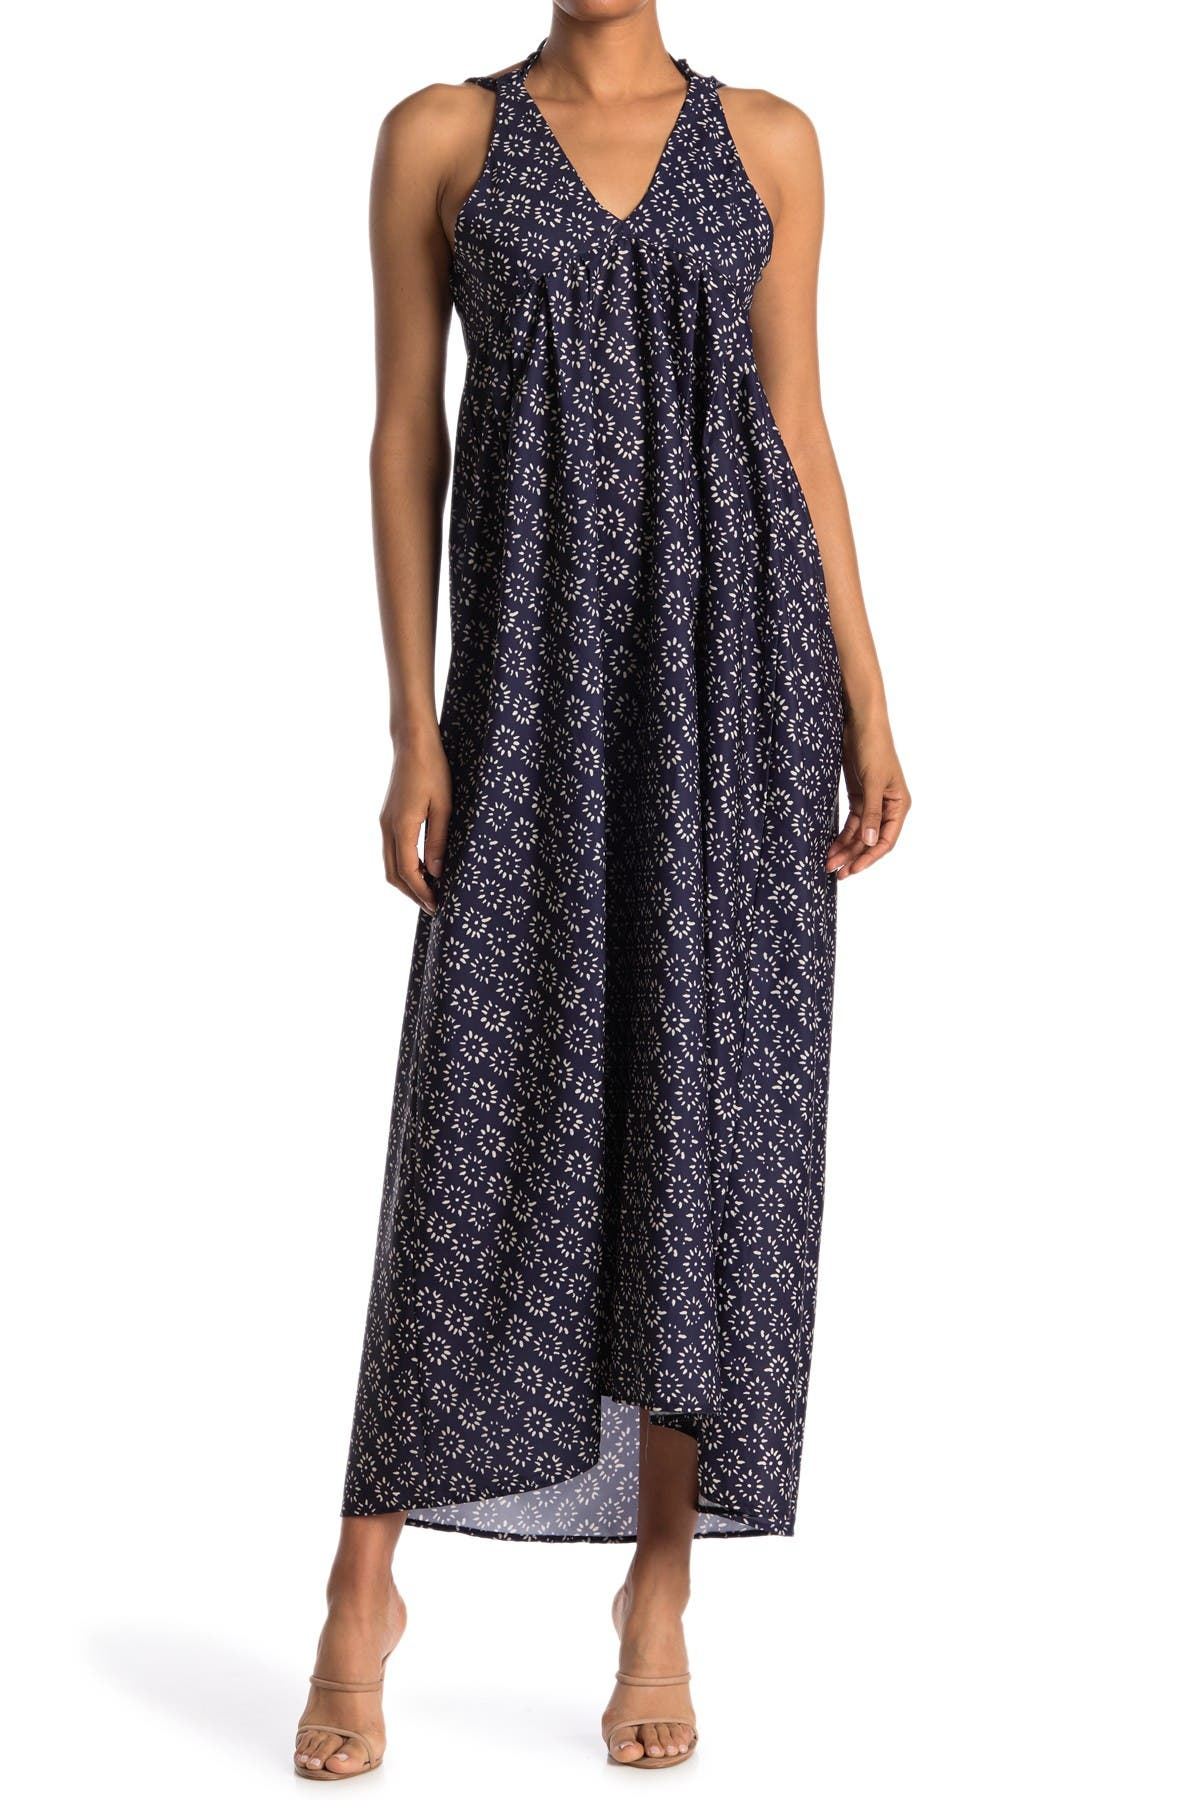 Image of STITCHDROP Printed Back Tie Maxi Dress